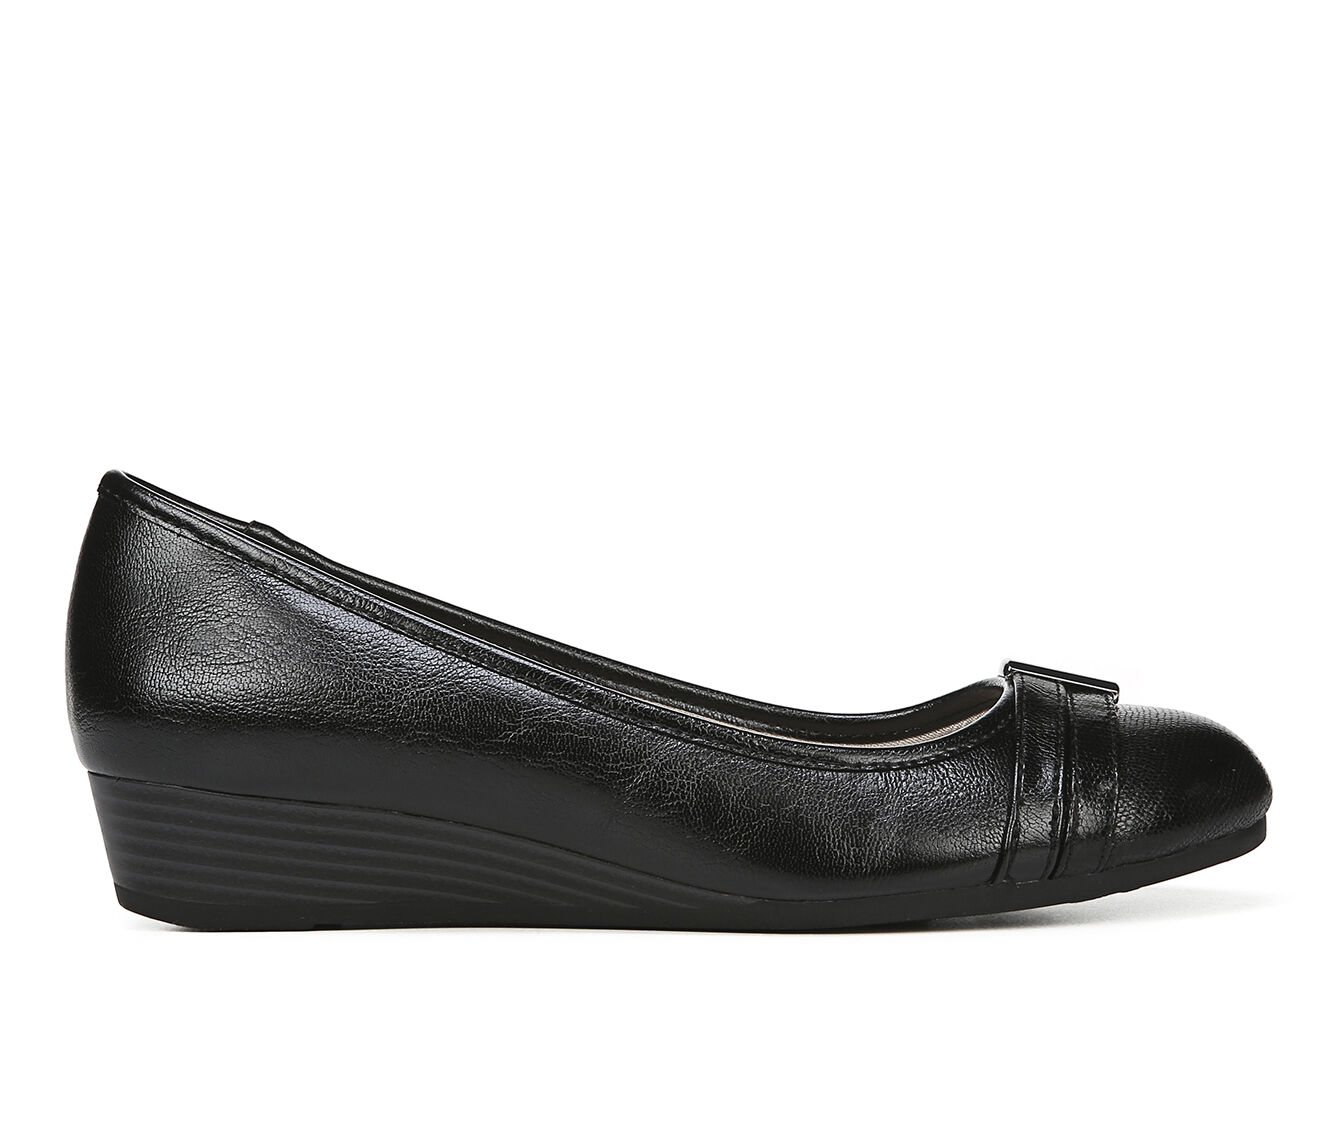 Special Sales Women's LifeStride Frances Shoes Black